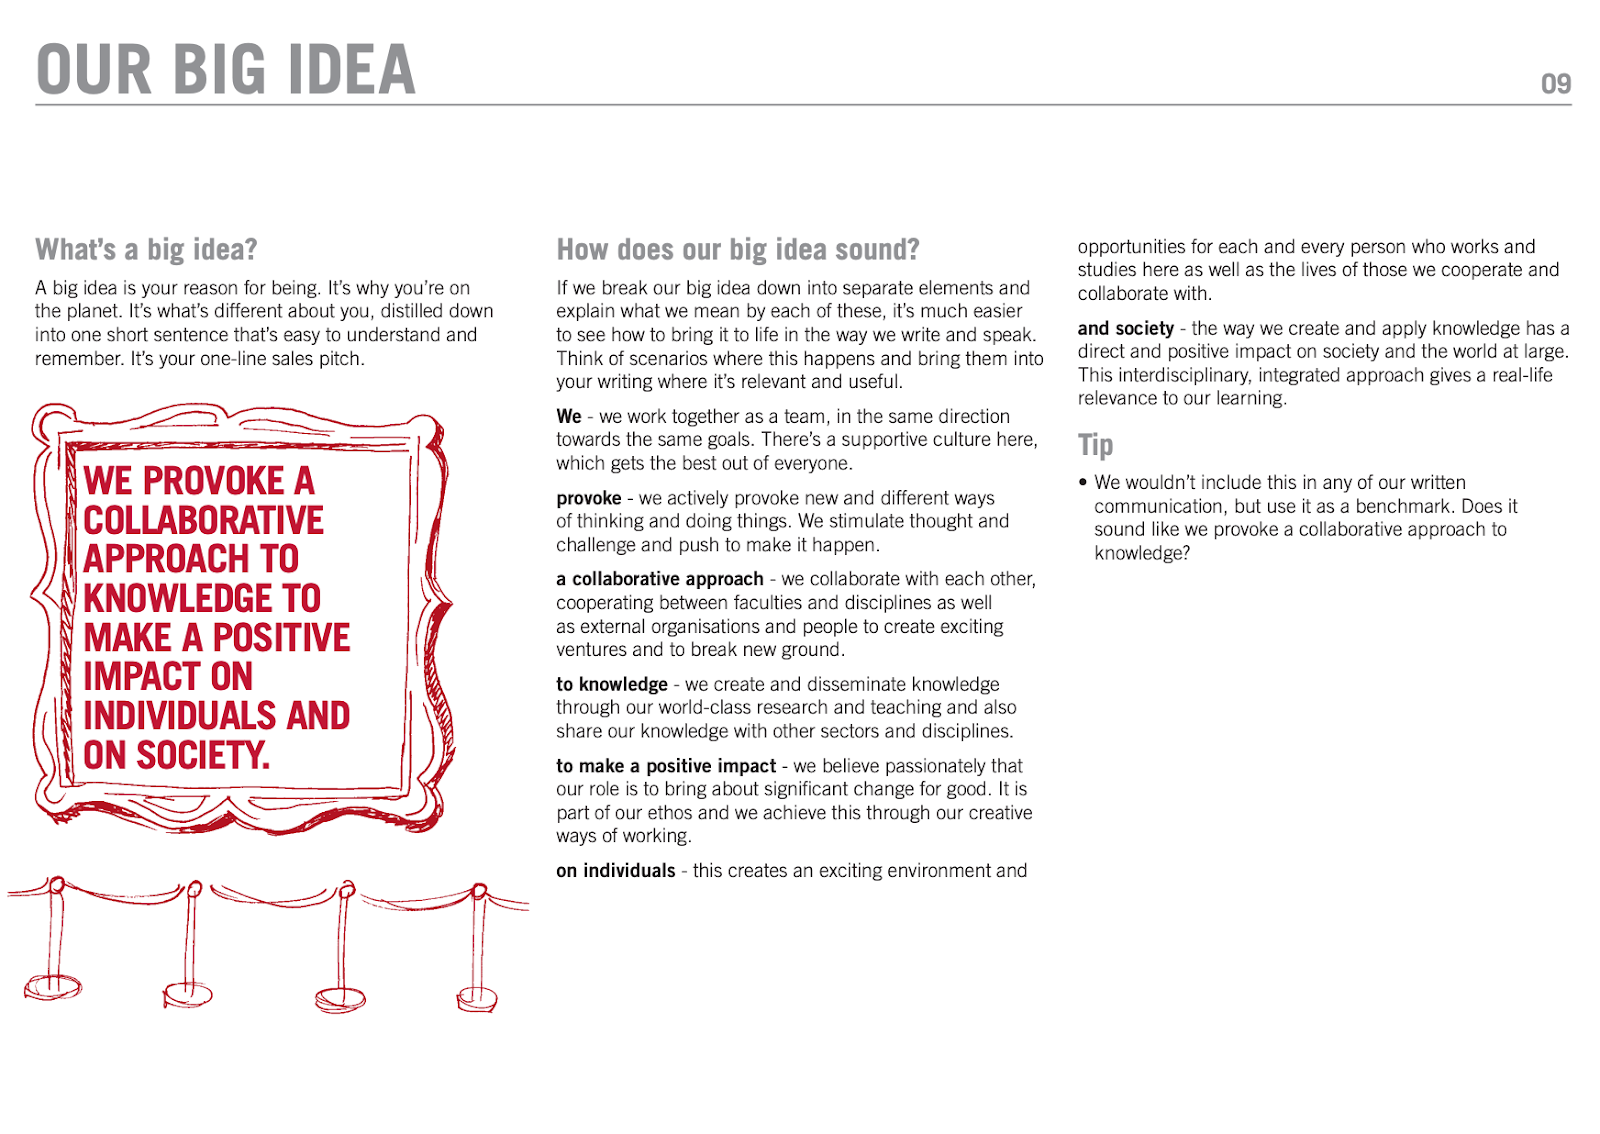 An image showing a page from the University of Leeds content style guide. This page uses text to share their big idea. Their big idea is: we provoke a collaborative approach to knowledge to make a positive impact on individuals and on society. The page shares the big idea and then breaks it down into separate elements by discussing indiviudal words such as 'we', 'provoke' and 'society'.